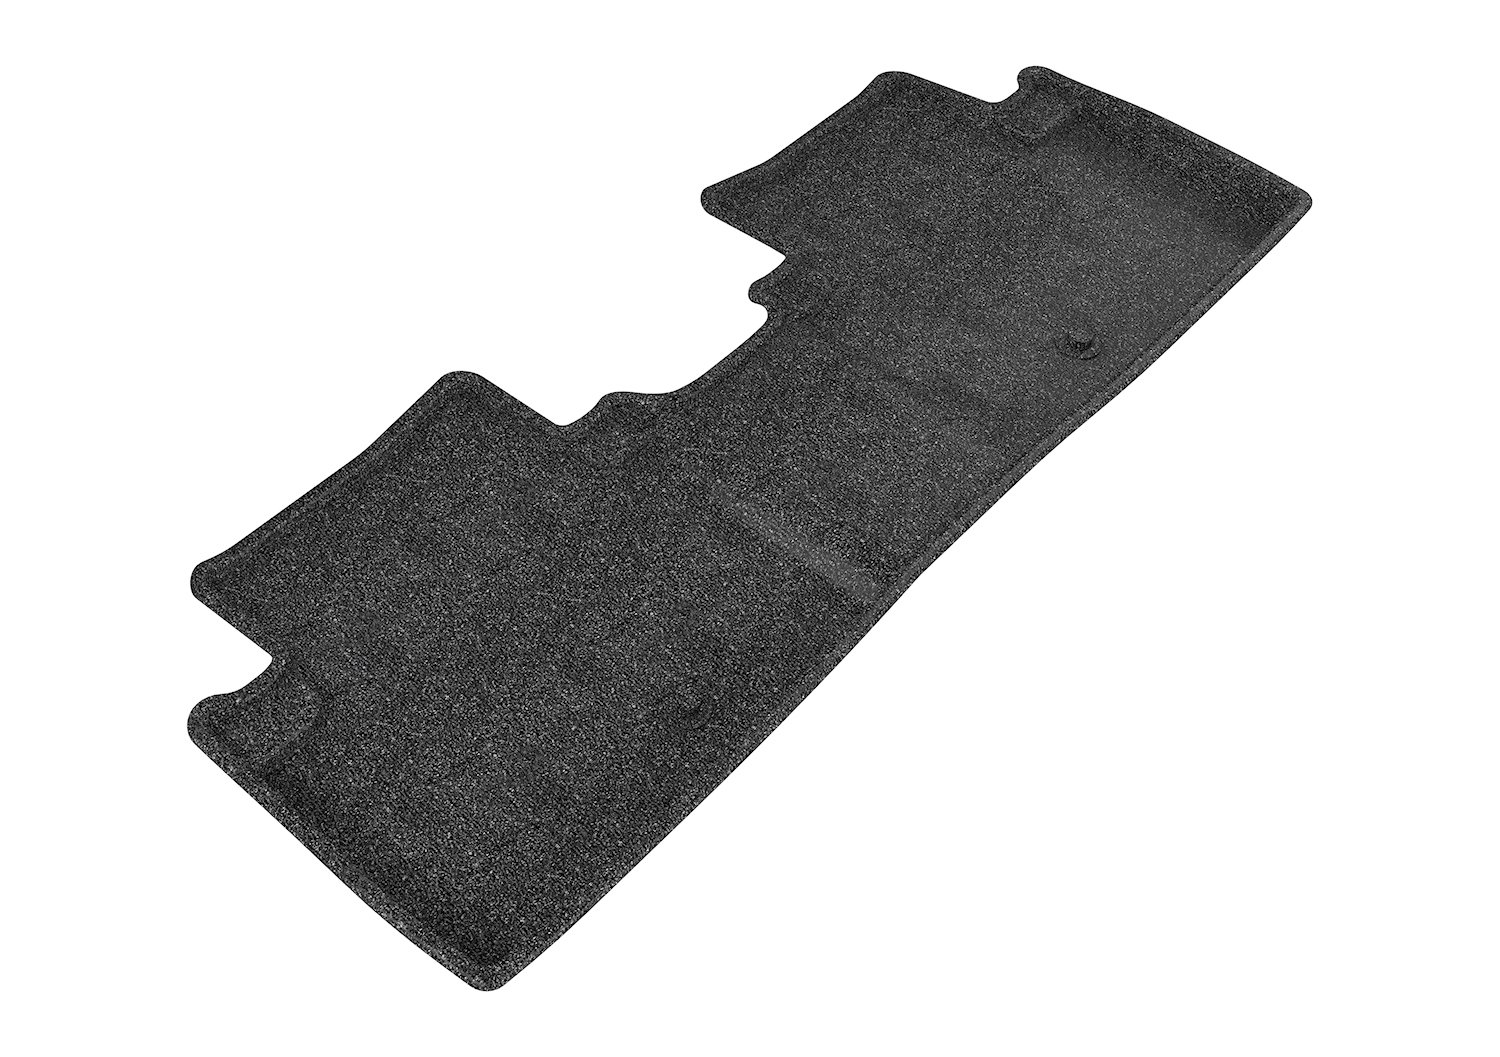 3D MAXpider Second Row Custom Fit All-Weather Floor Mat for Select Acura ILX Models - Classic Carpet (Black)